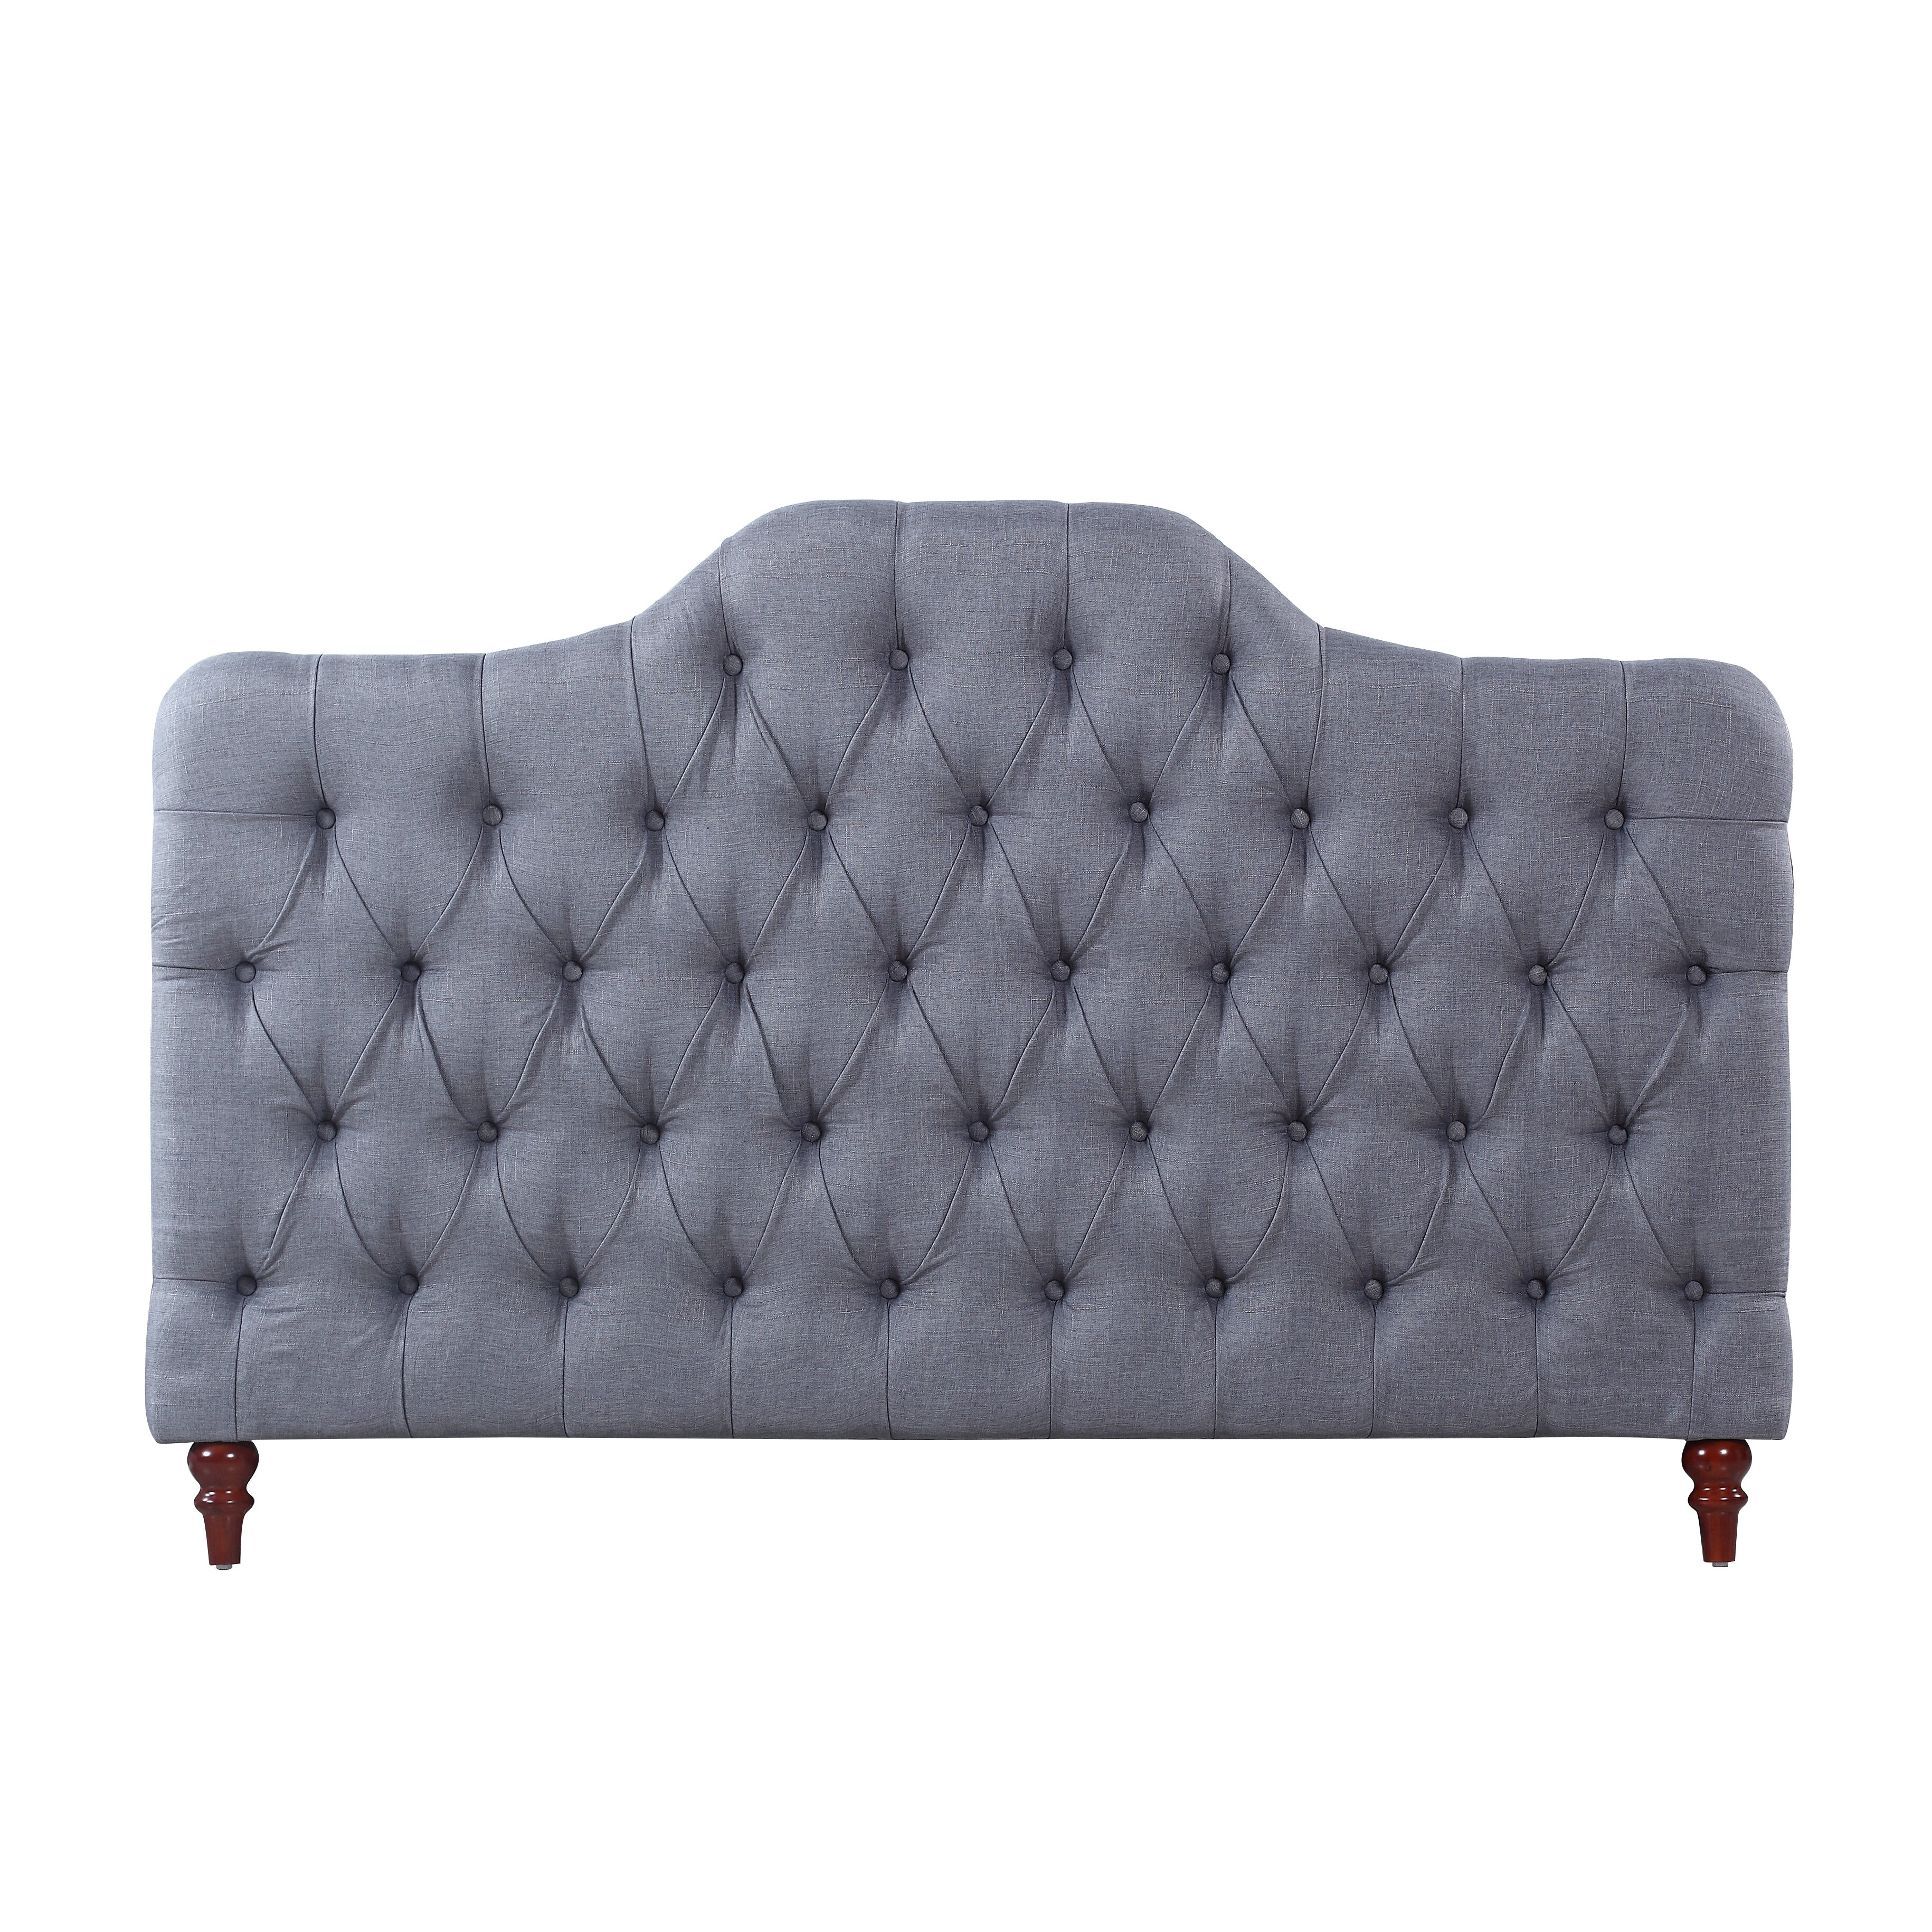 Madison Home USA Classic Deluxe Full Upholstered Panel Headboard. Madison Home USA Classic Deluxe Full Upholstered Panel Headboard